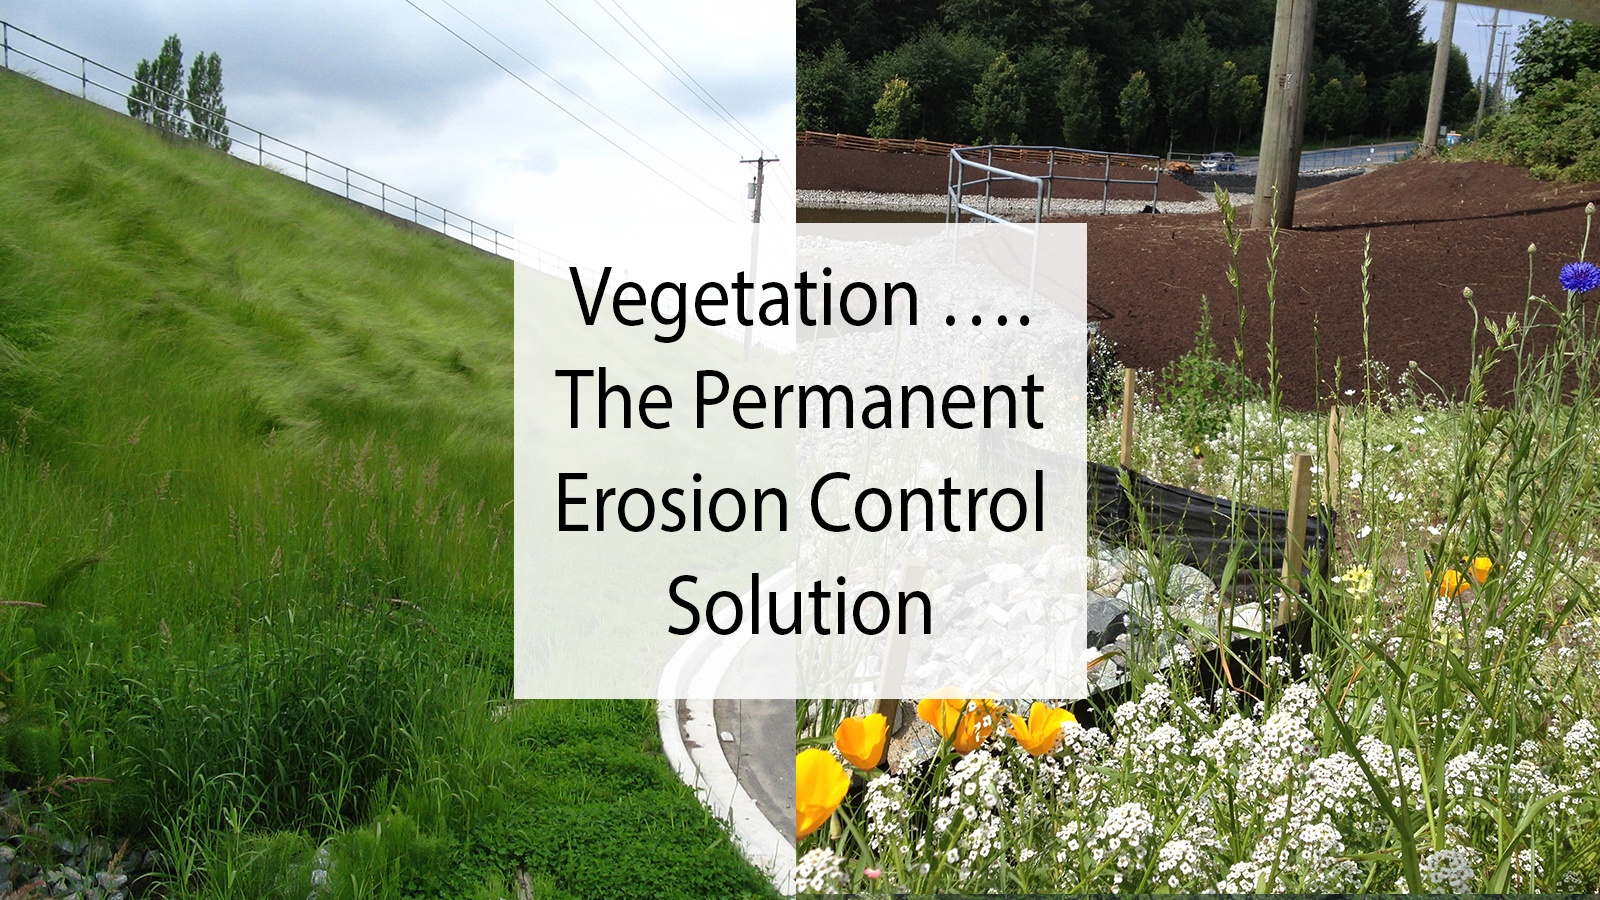 Vegetation - the permanent erosion control solution